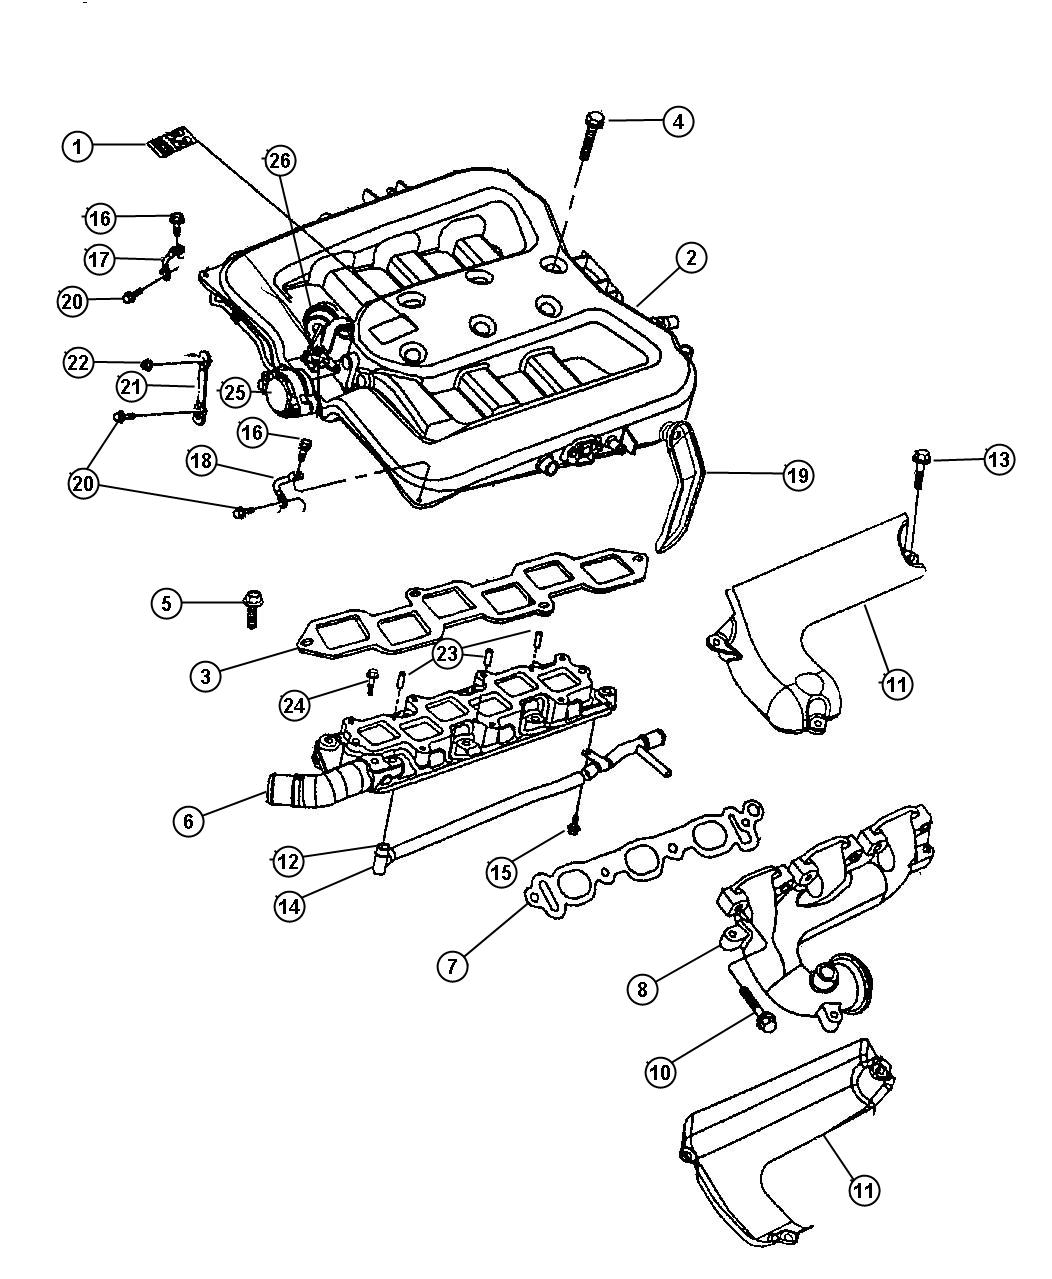 hight resolution of 2000 dodge intrepid factory radio wiring 2000 dodge dakota wiring diagram 2000 dodge dakota wiring diagram